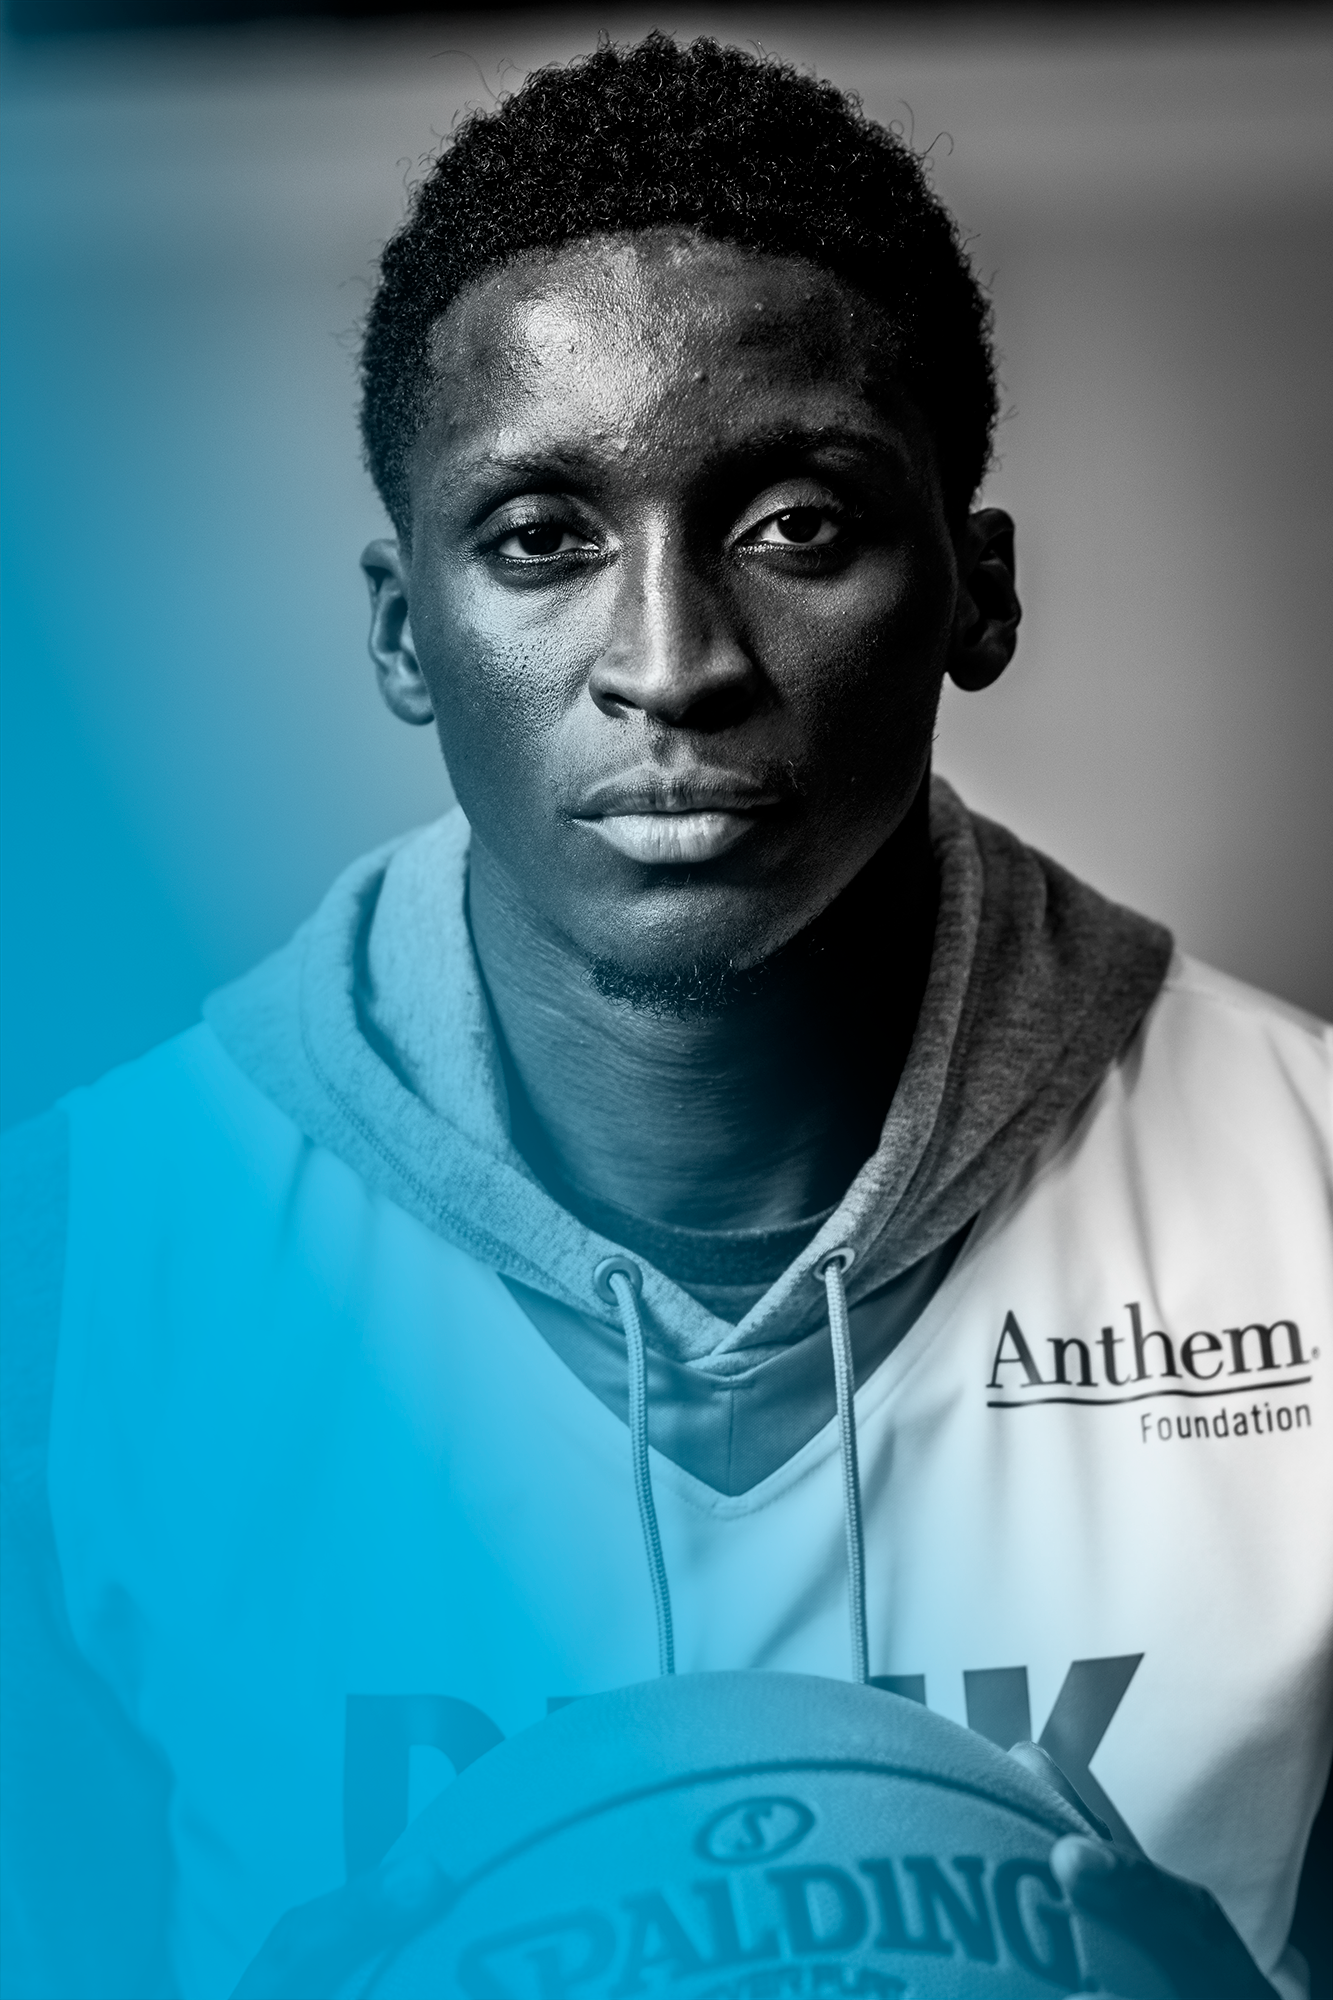 Anthem Health Champion - Oladipo has long been devoted to promoting healthy choices and to giving back, but it was after unexpectedly losing his junior high school basketball coach that he realized his passion to make a difference for cancer prevention. In 2013, Oladipo helped establish Dunk Cancer, a charitable initiative that brings the basketball community together to help individuals and families affected by cancer to overcome their present battles and to support research finding a cure.Learn More About Victor